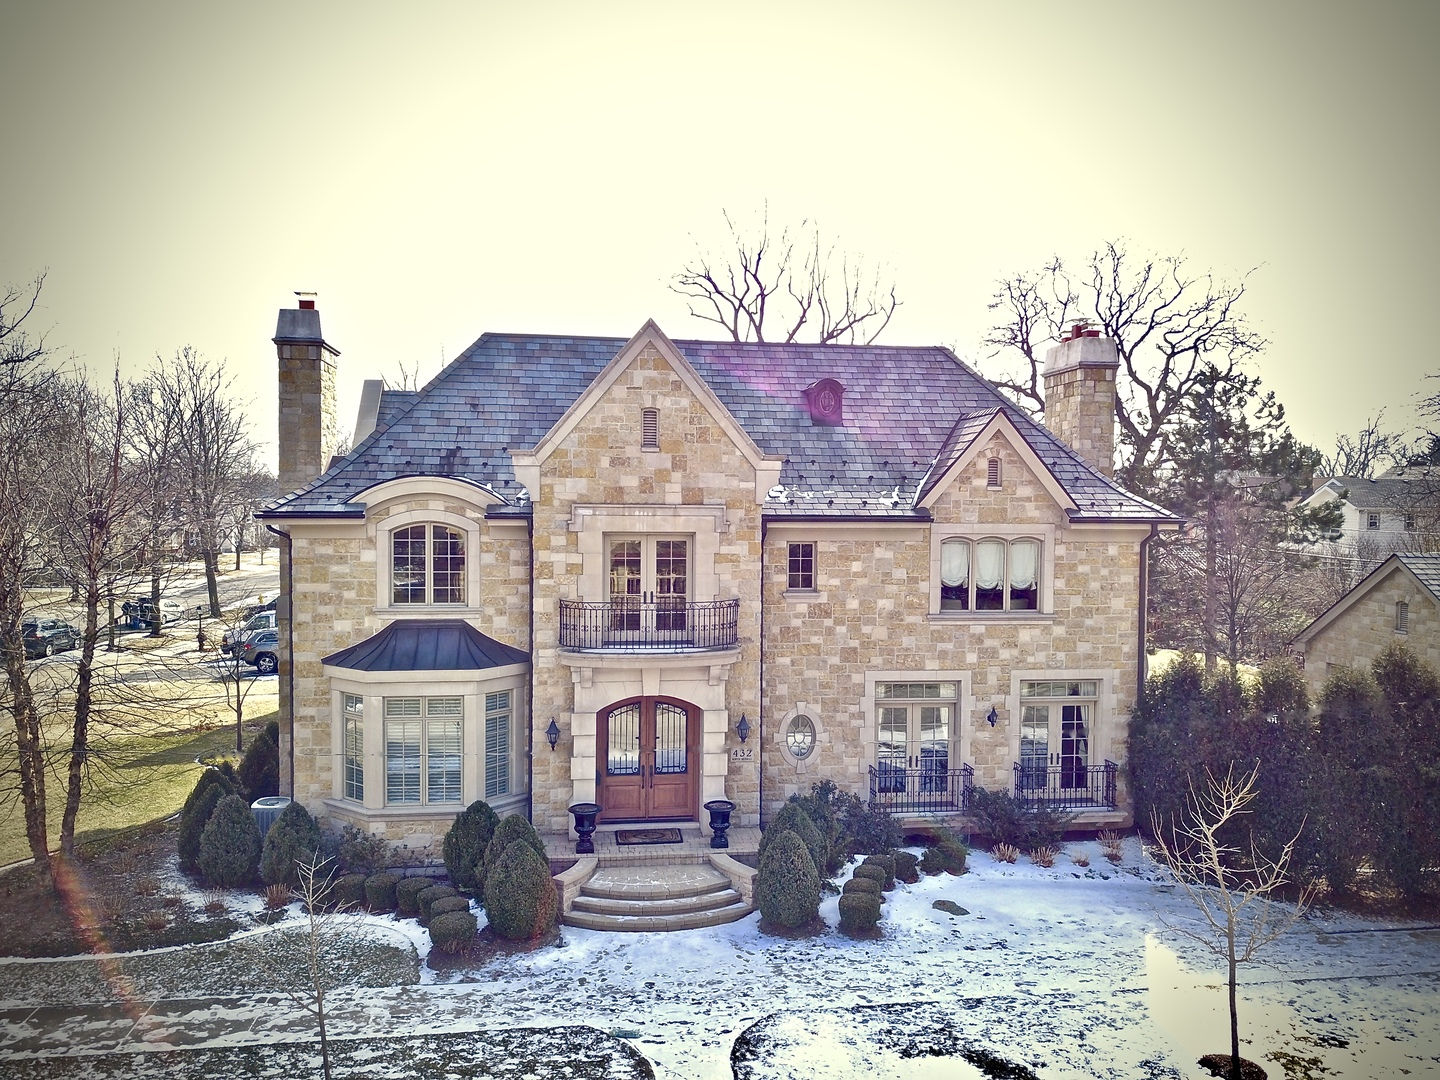 432 North Merrill Street, one of homes for sale in Park Ridge